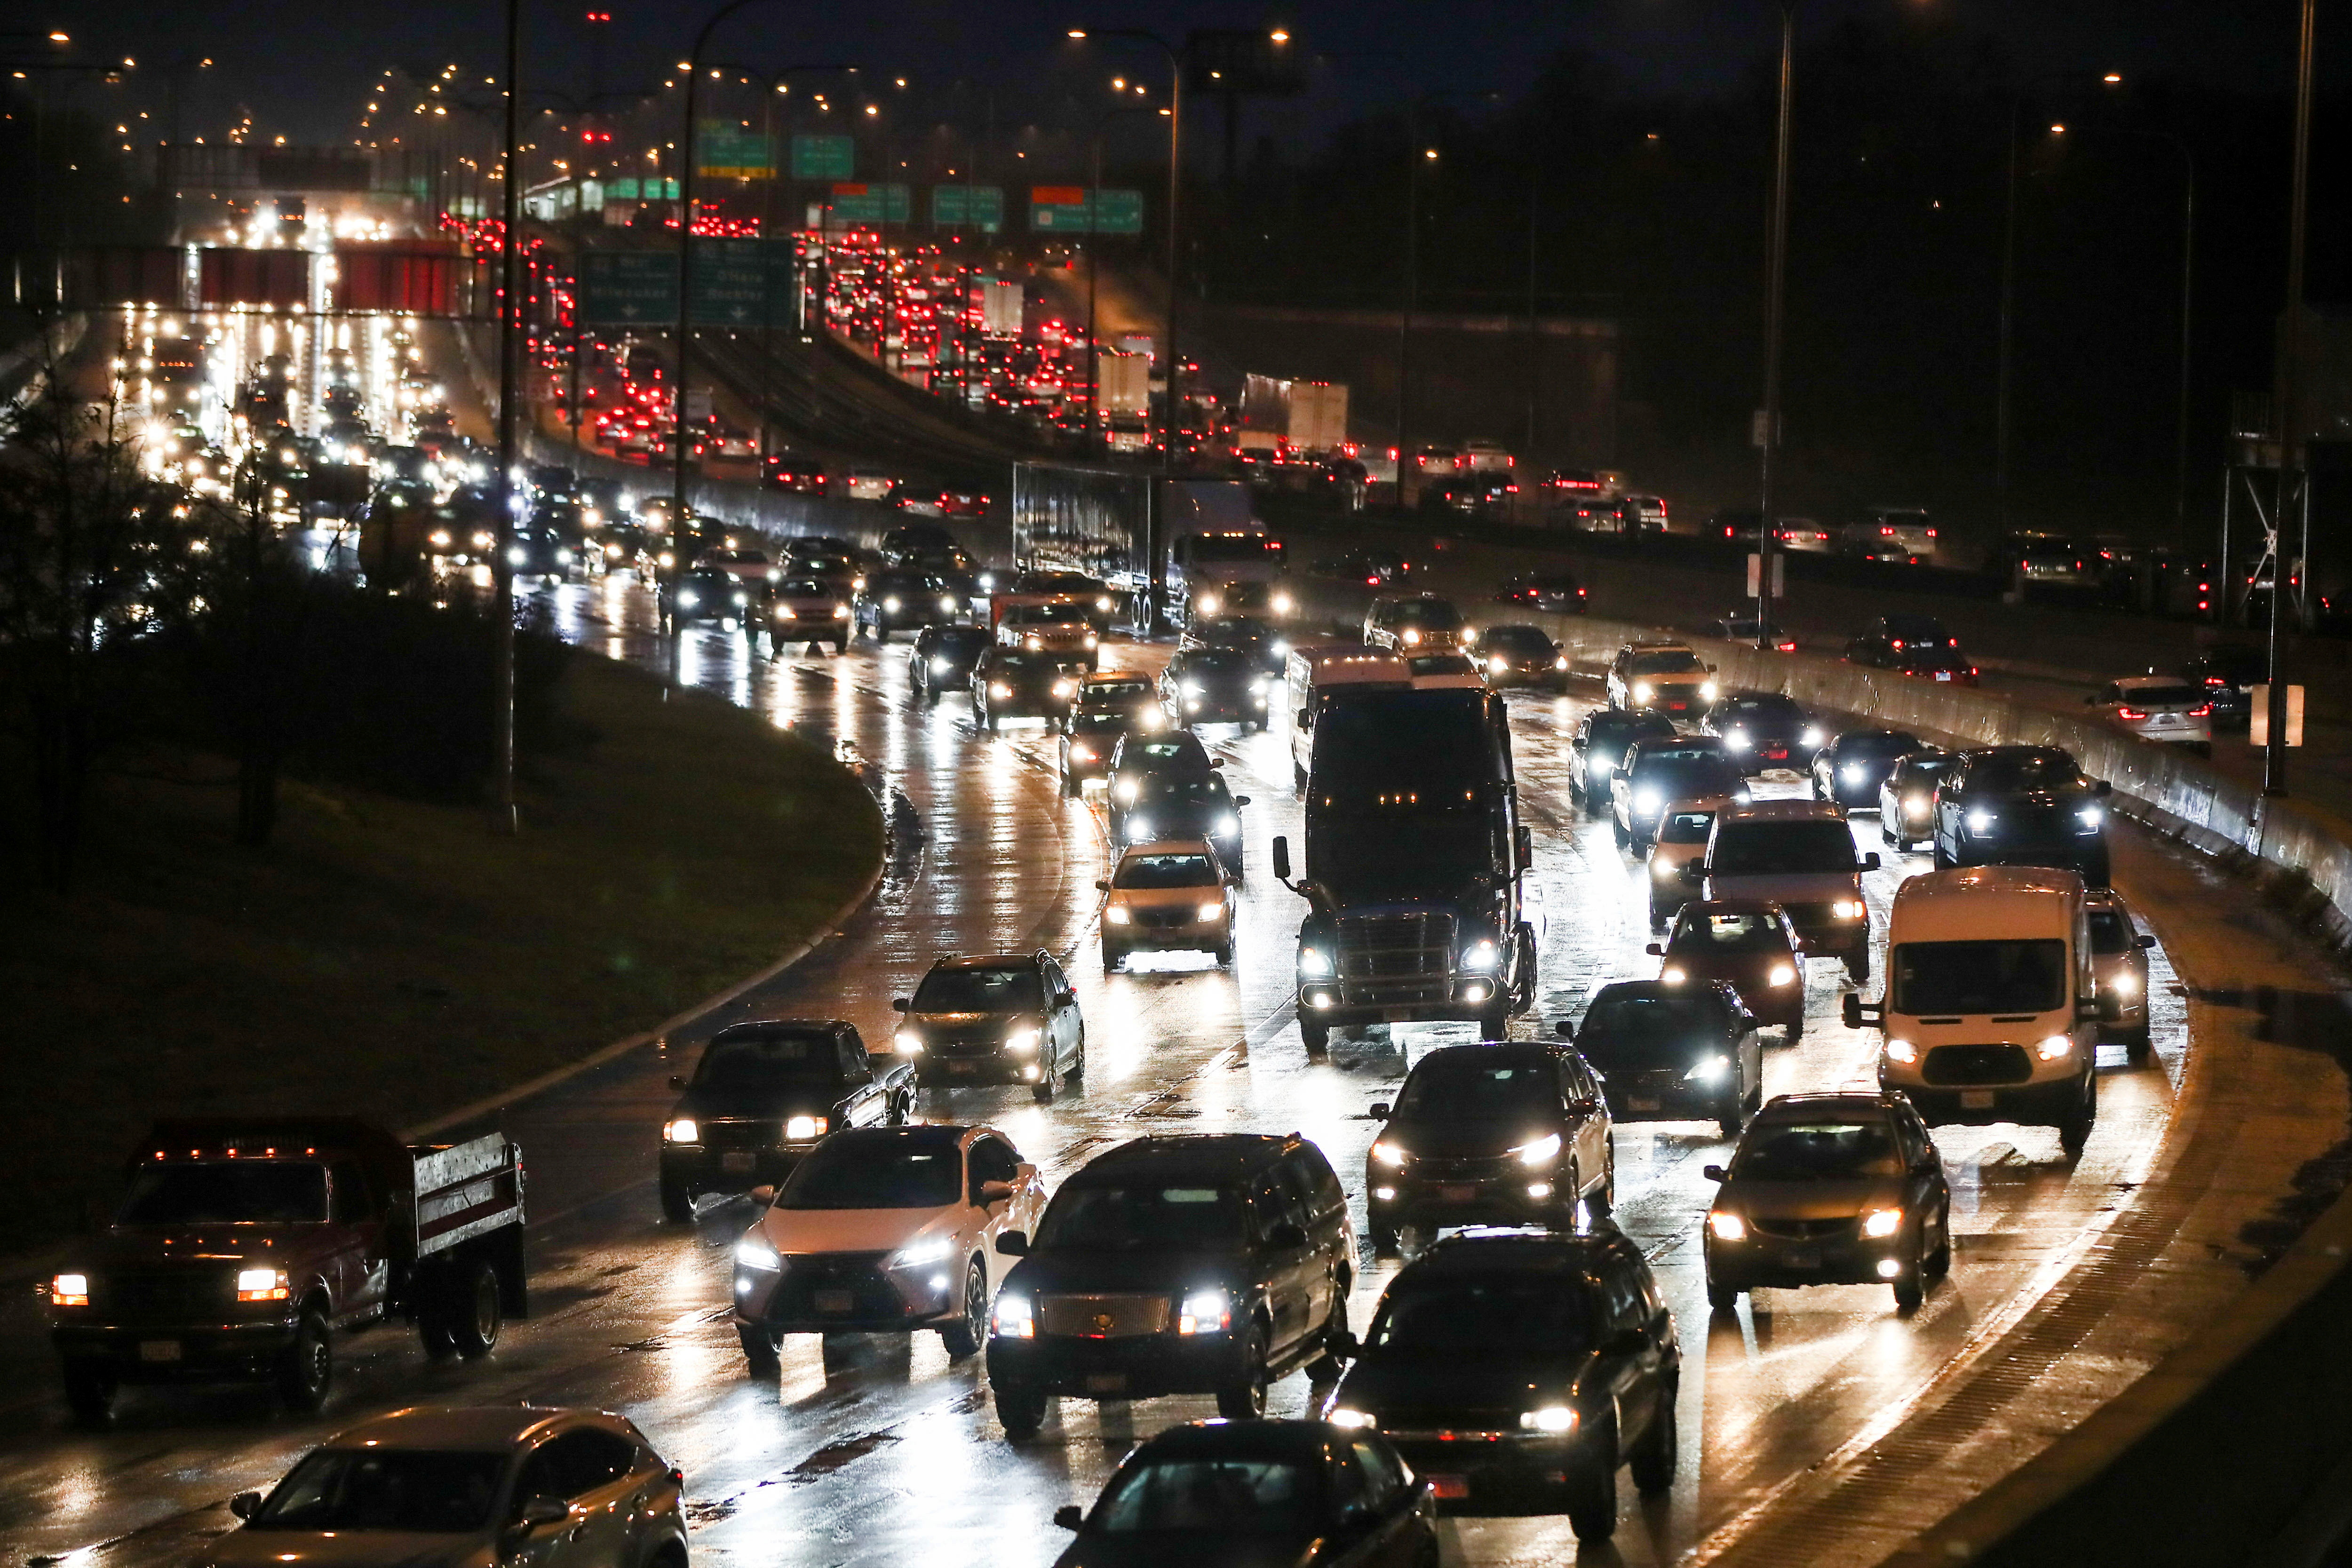 Travellers take to the roads ahead of the Thanksgiving holiday during the coronavirus disease (COVID-19) outbreak, in Chicago, Illinois, U.S. November 24, 2020. REUTERS/Kamil Krzaczynski